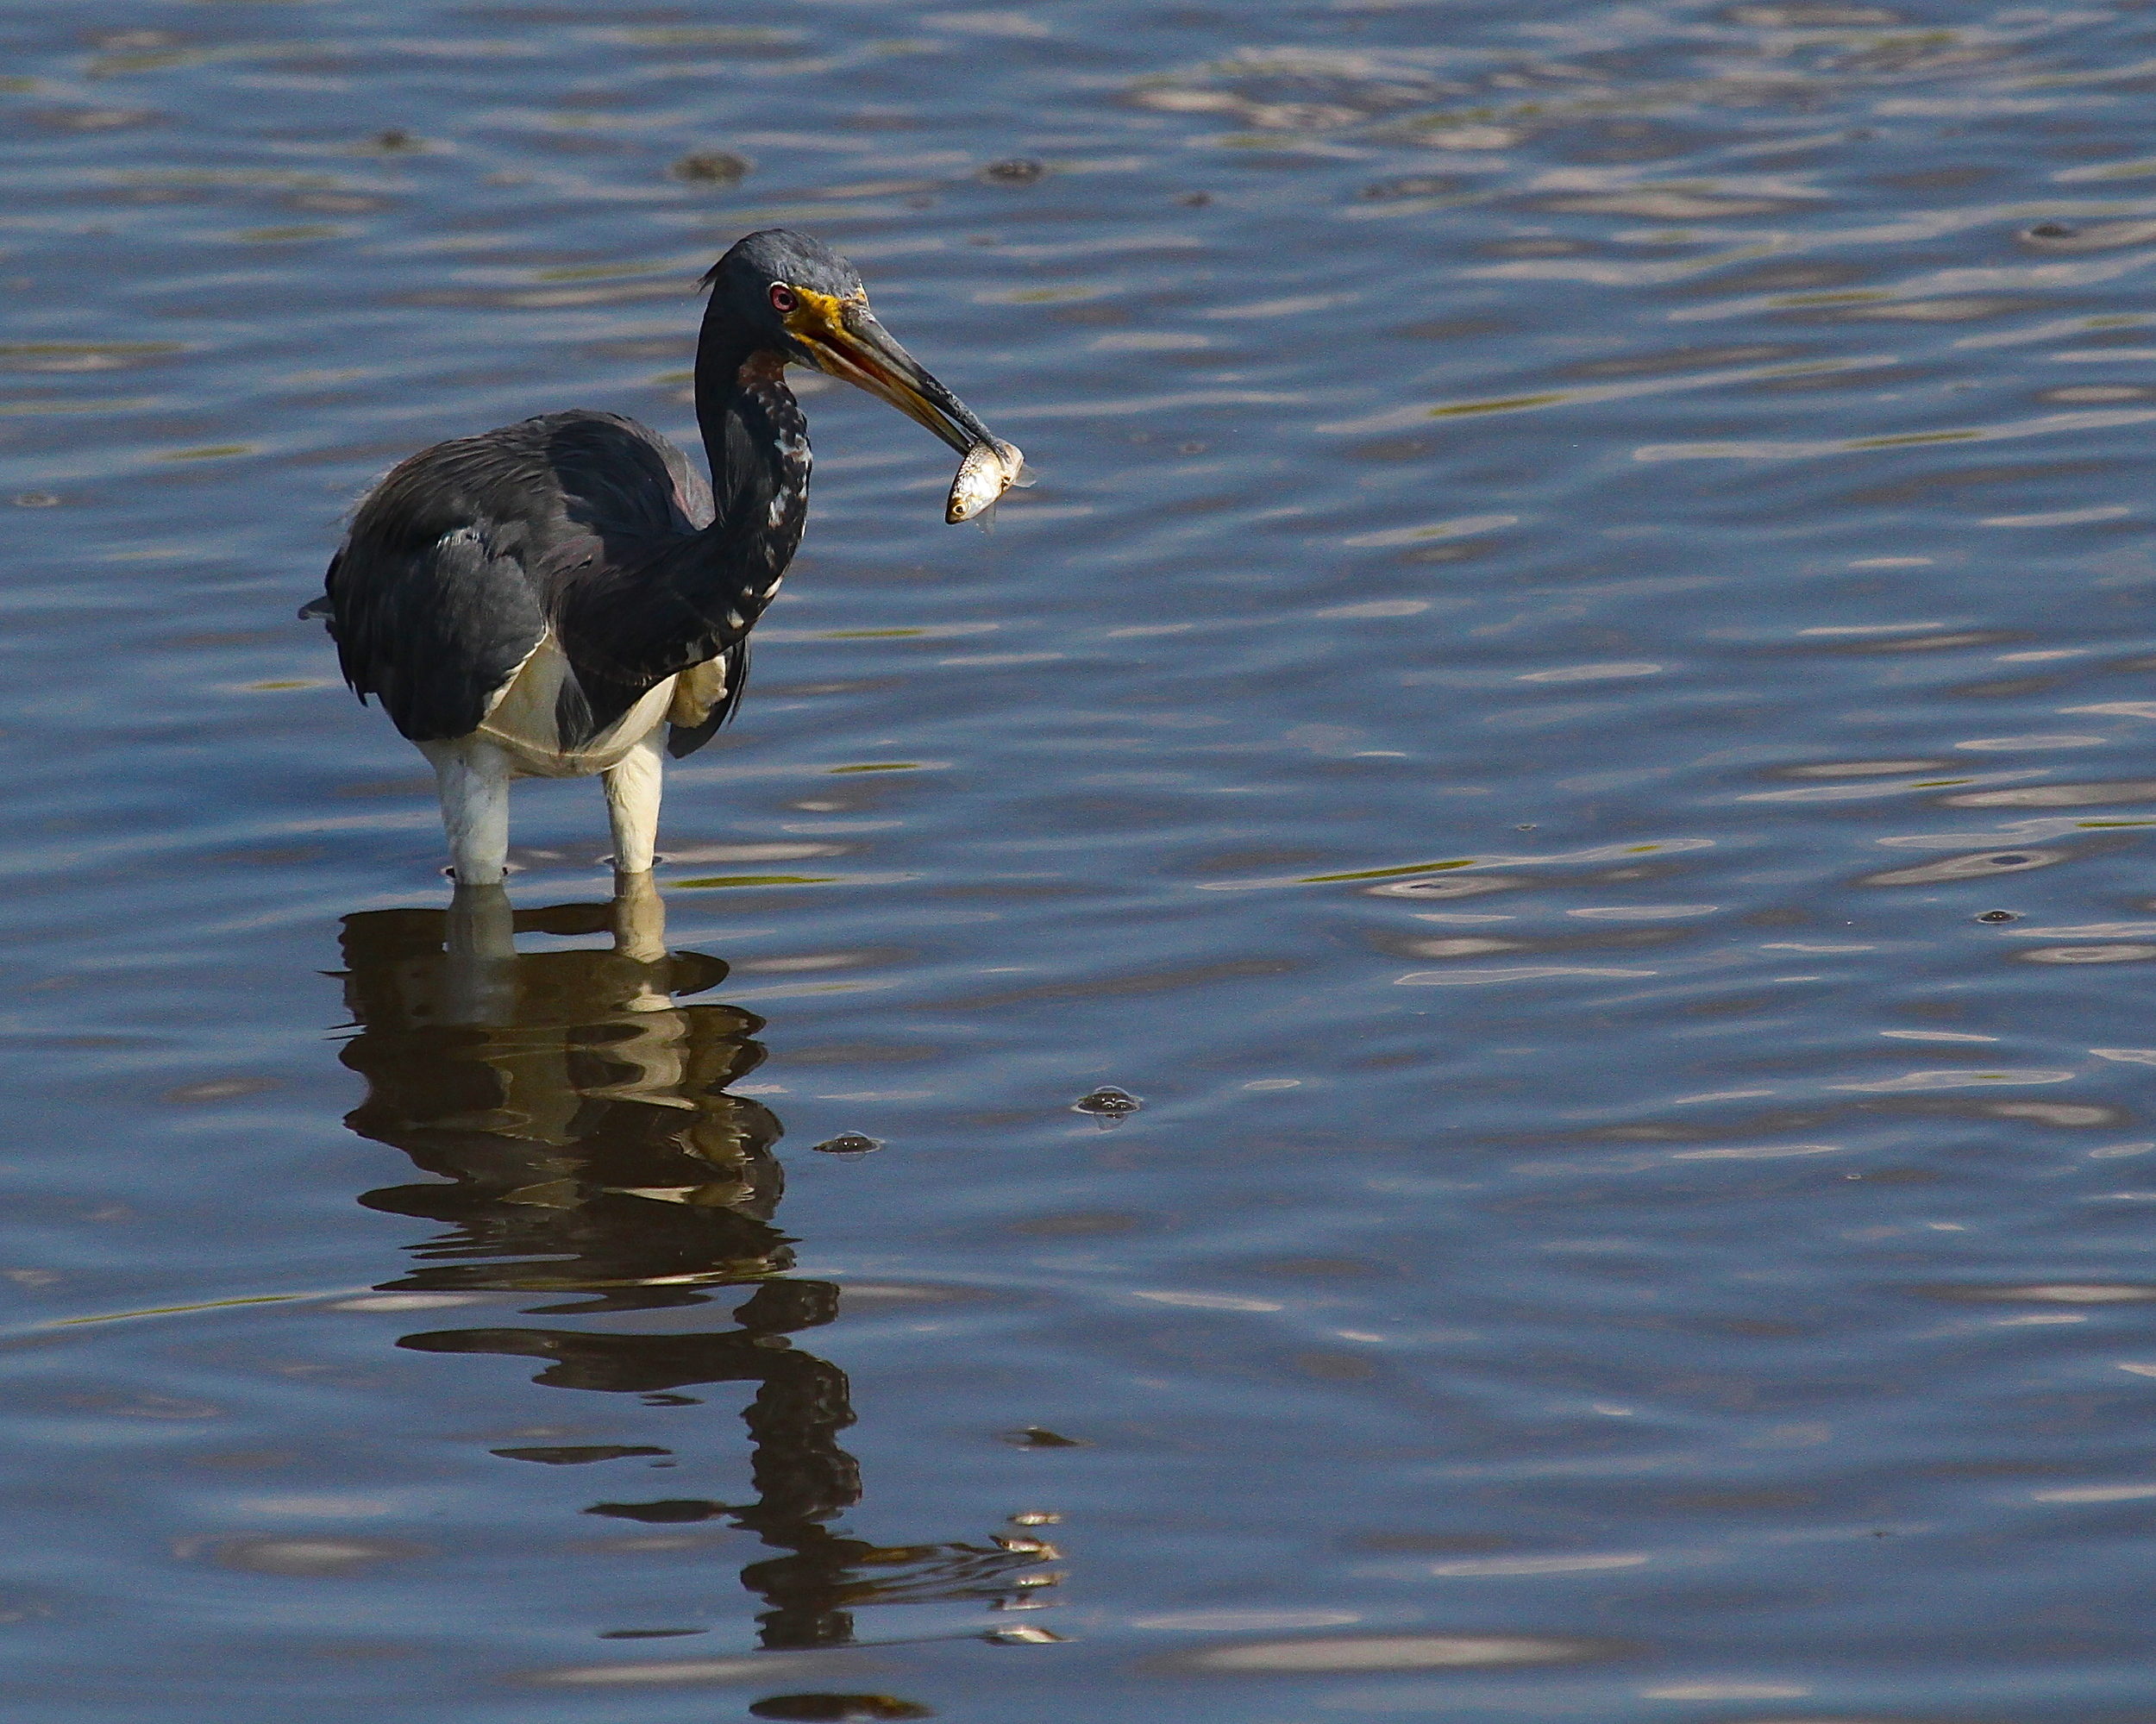 The Tricolored Heron harpoons a nice fat minnow for supper!